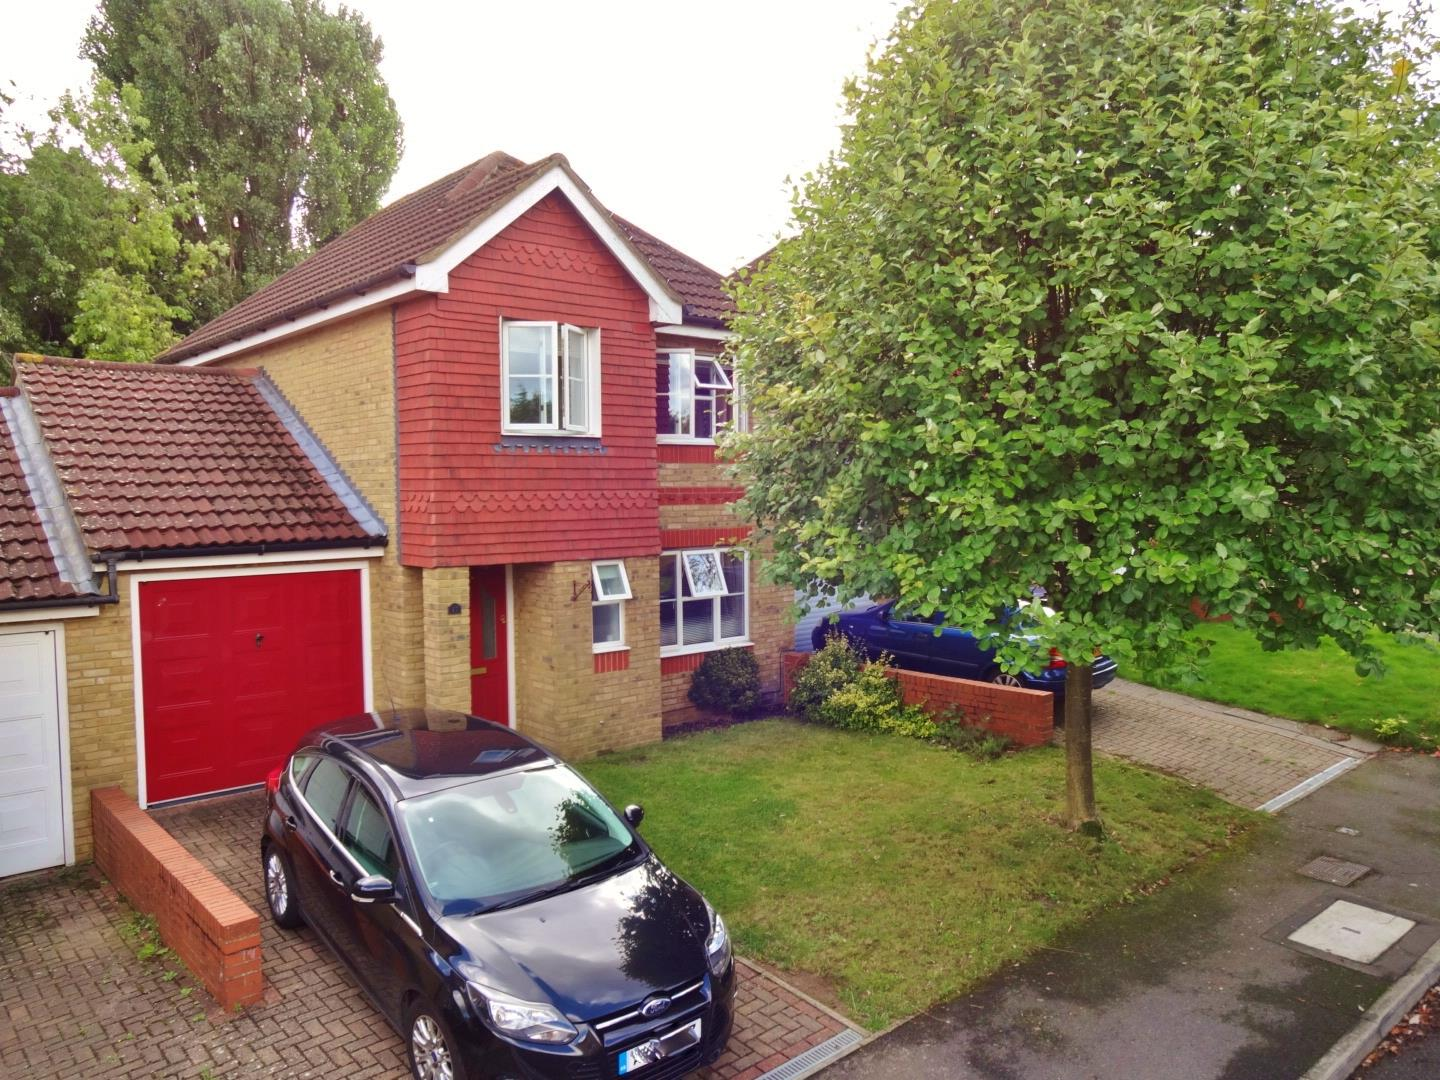 3 Bedrooms Detached House for sale in Beech Hurst Close, Maidstone